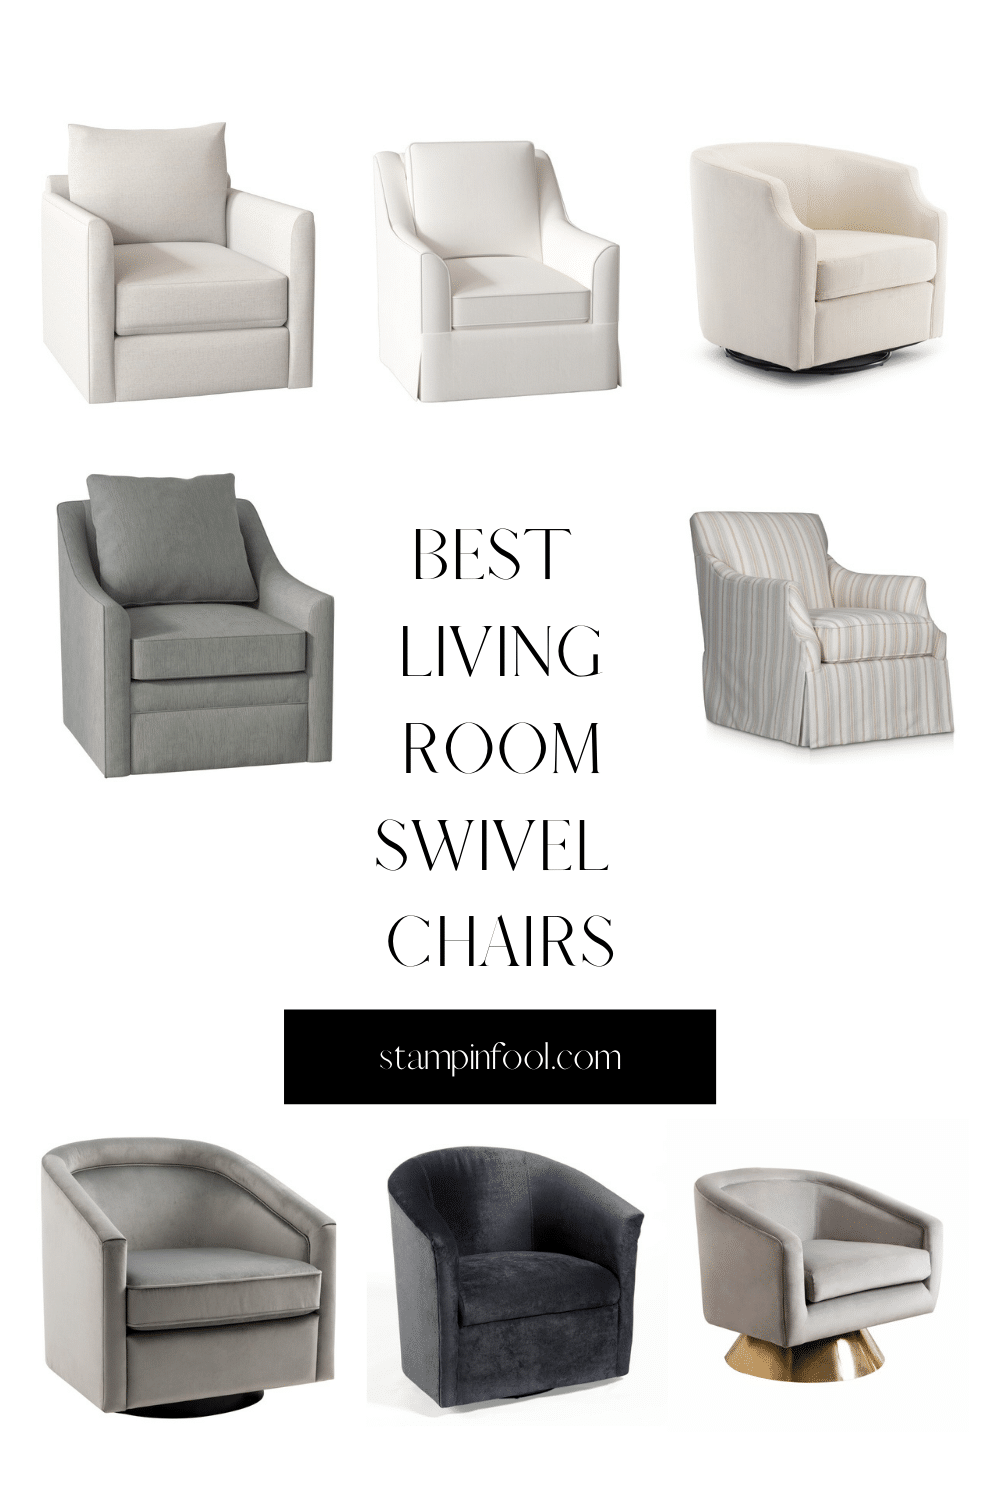 Best Living Room Swivel Chairs 2021